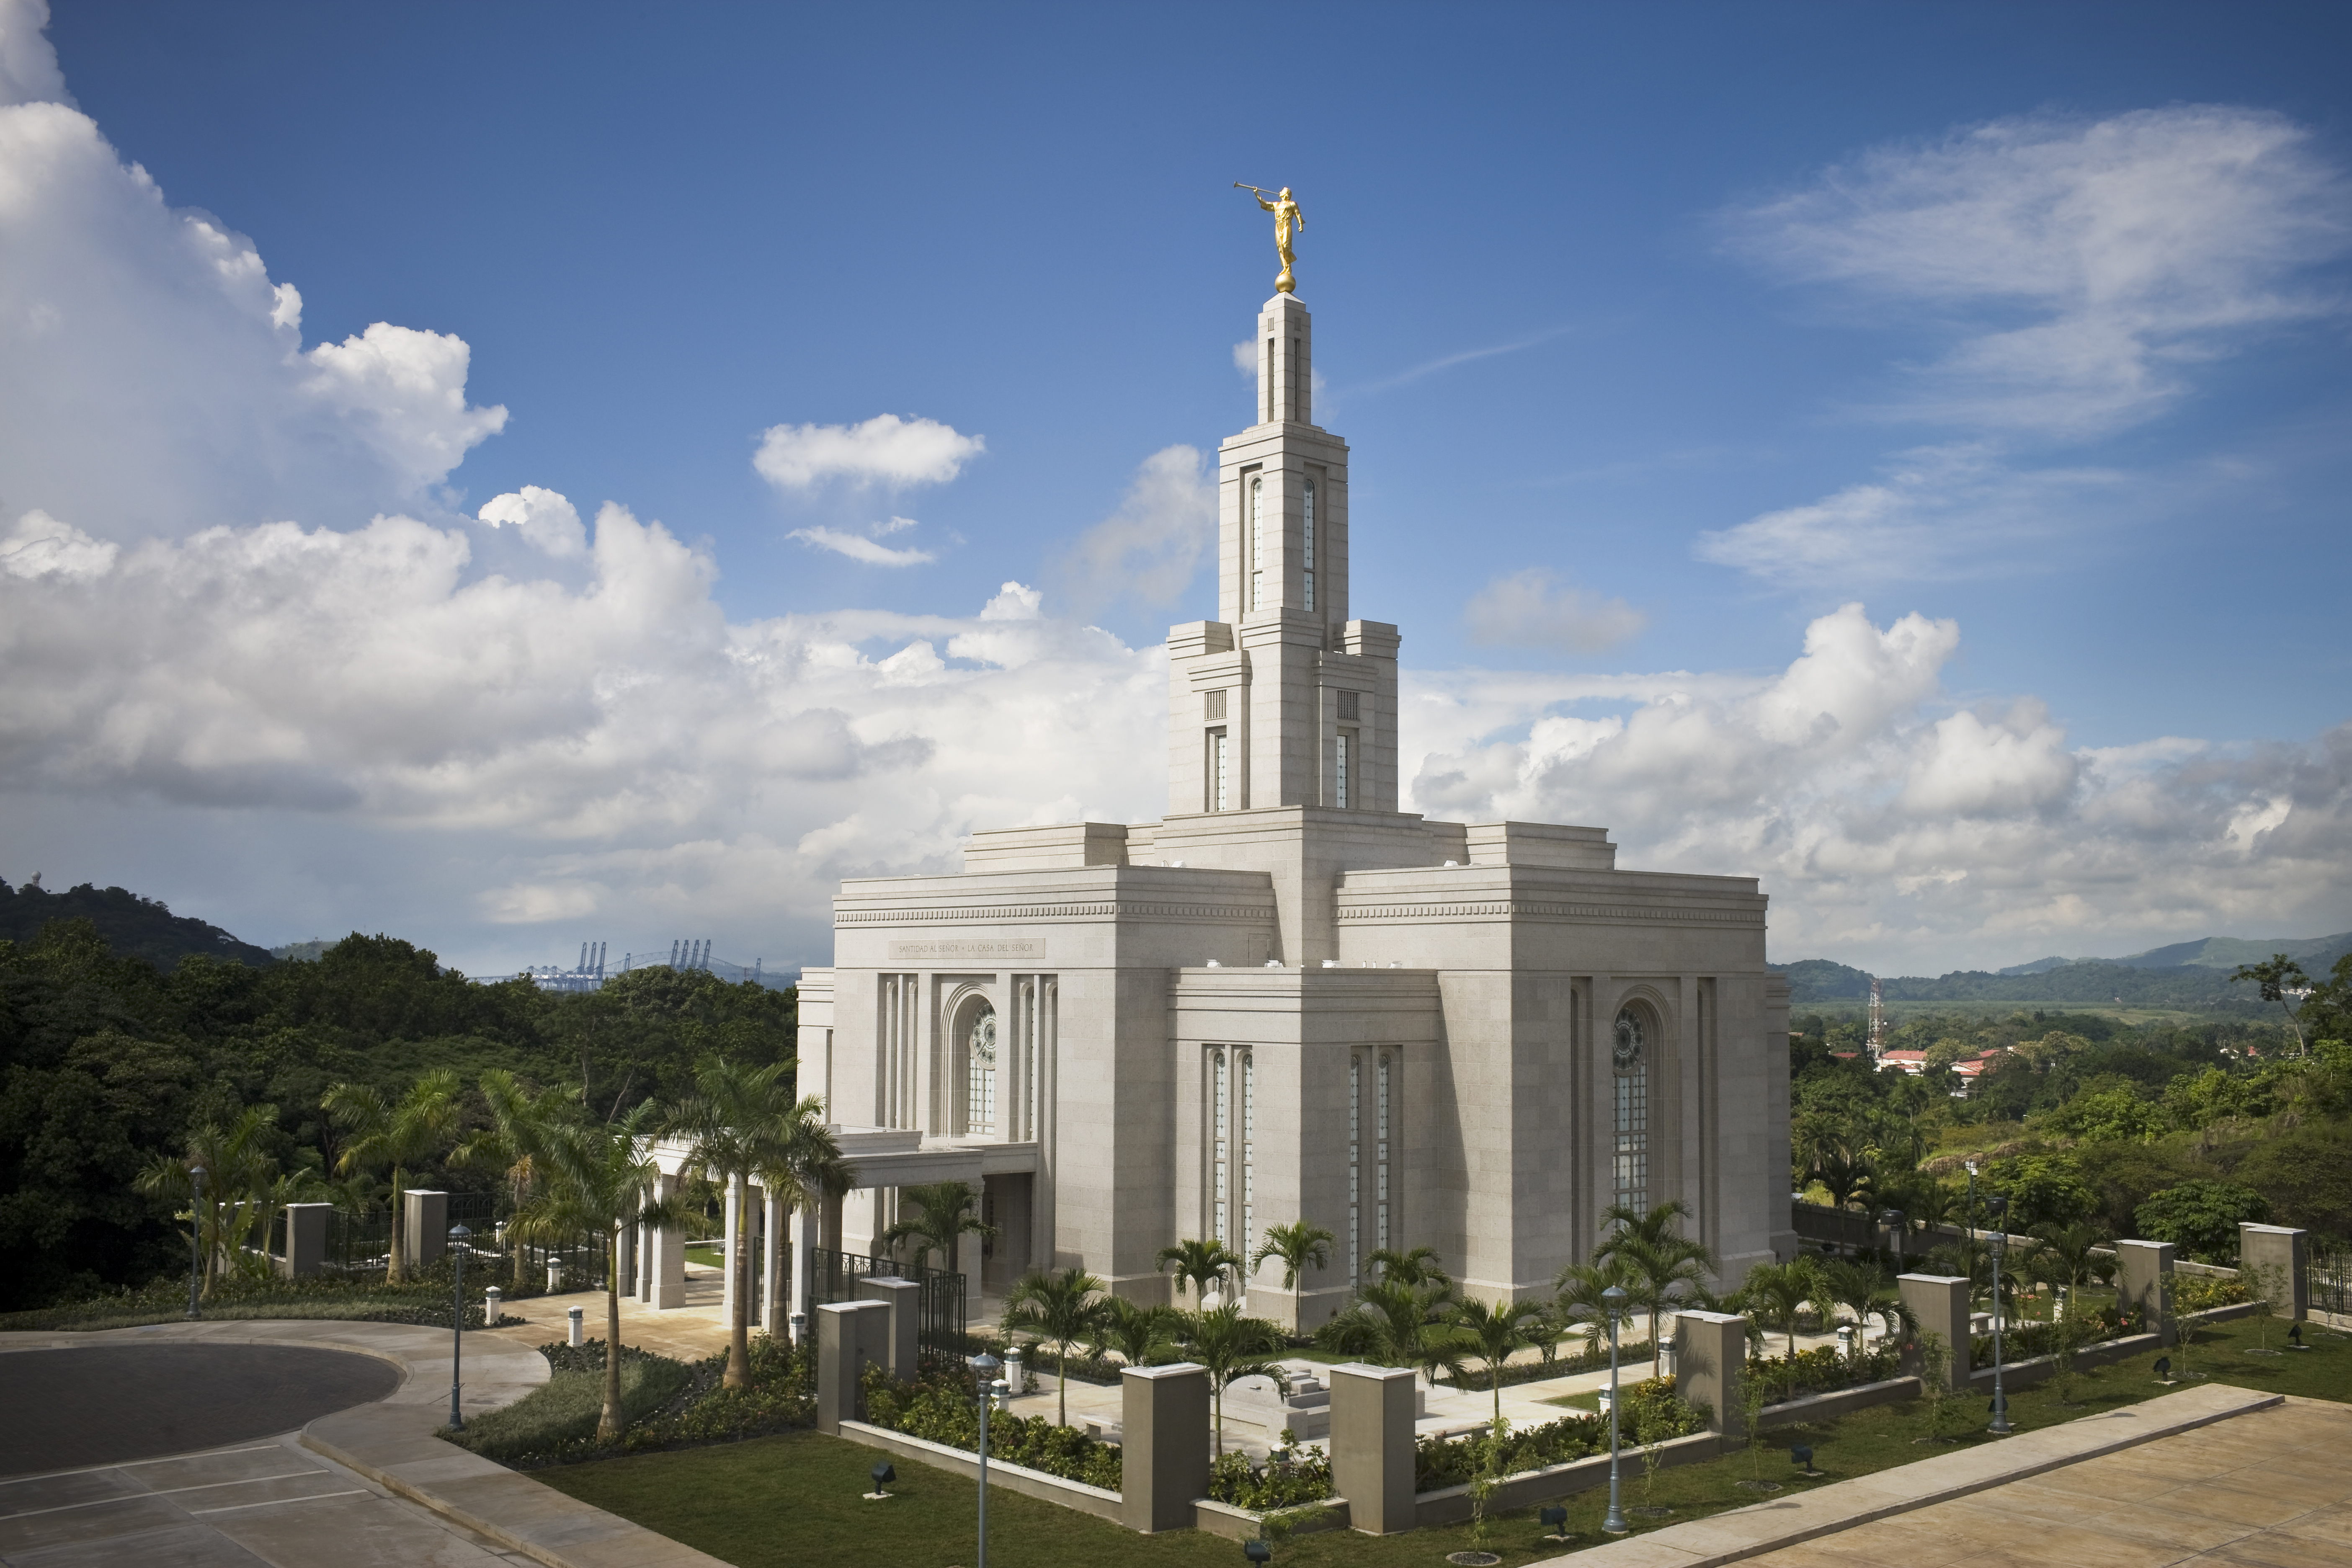 A side view of the Panama City Panama Temple, surrounded by palm trees, with large white clouds overhead.